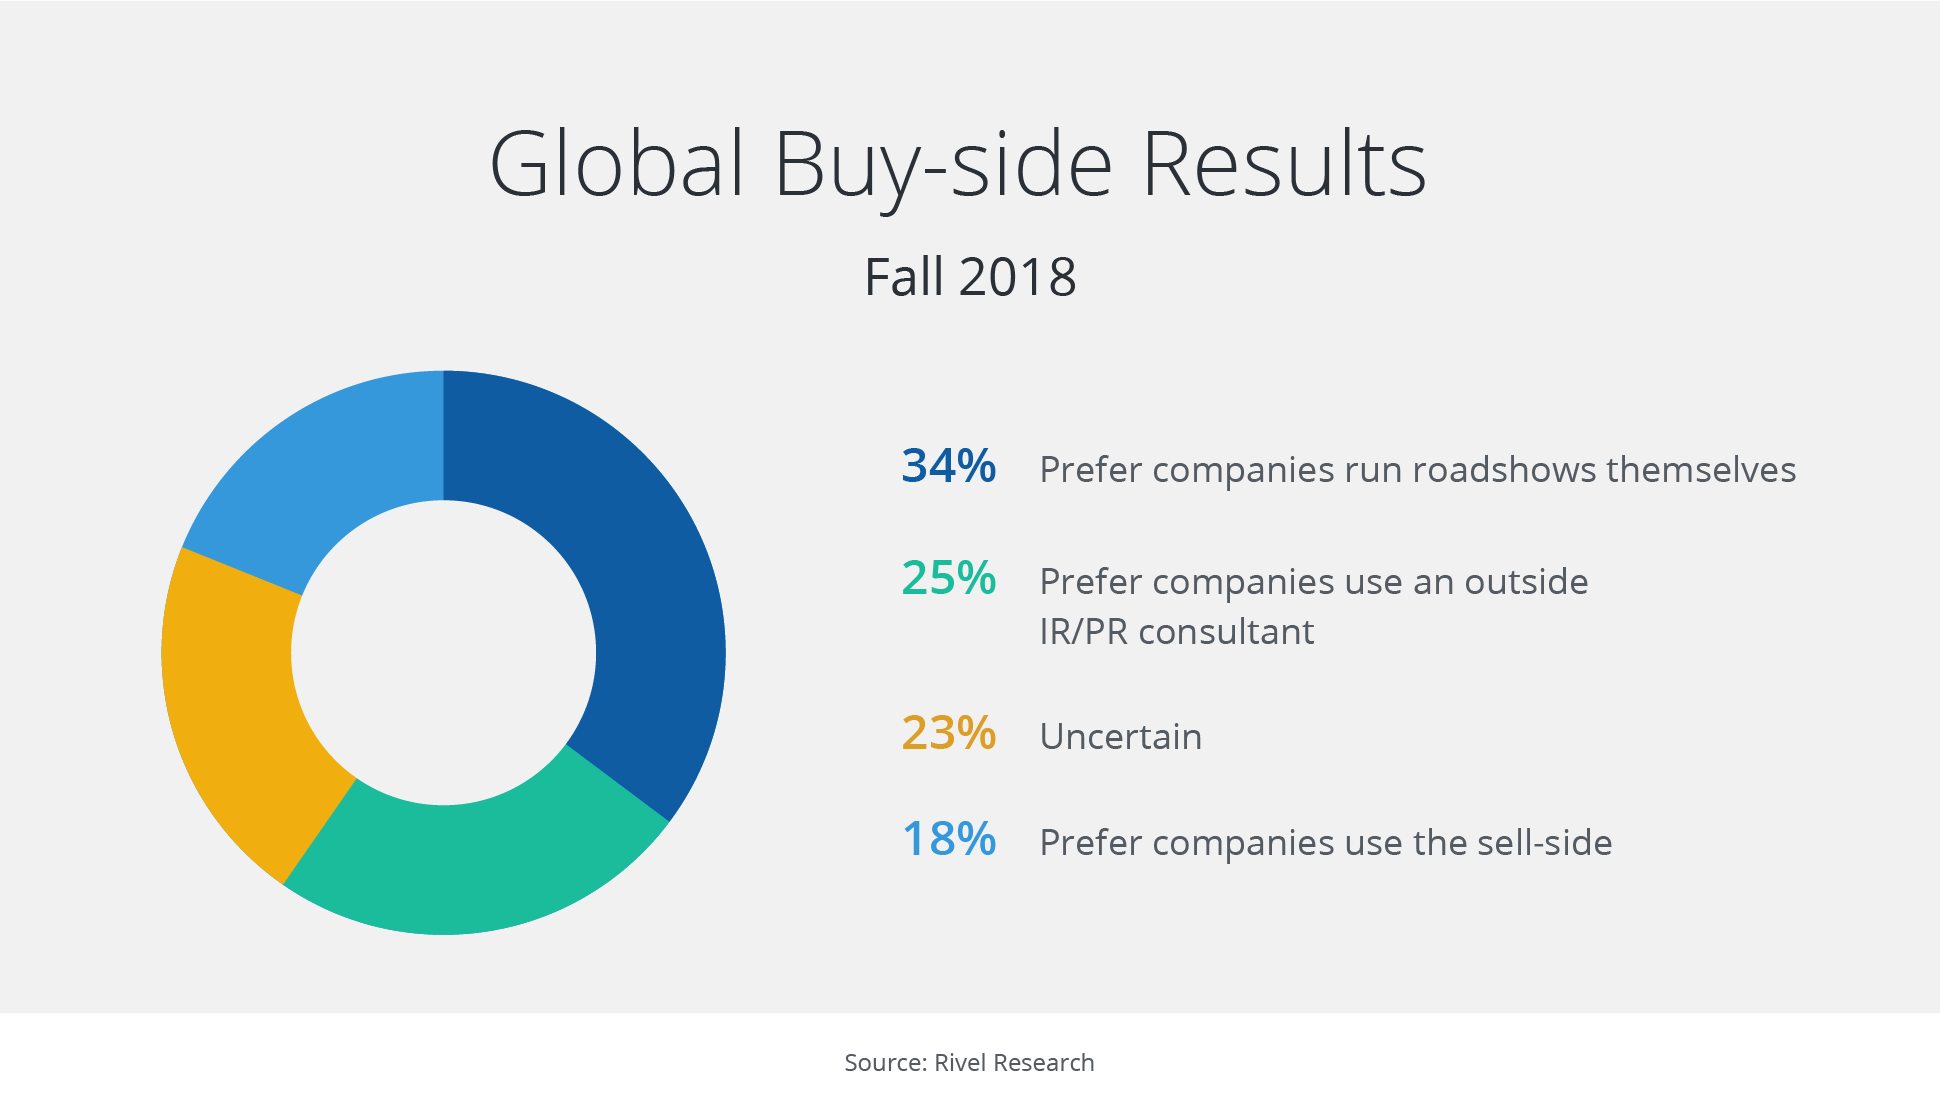 inset-global-buy-side-results@2x.png